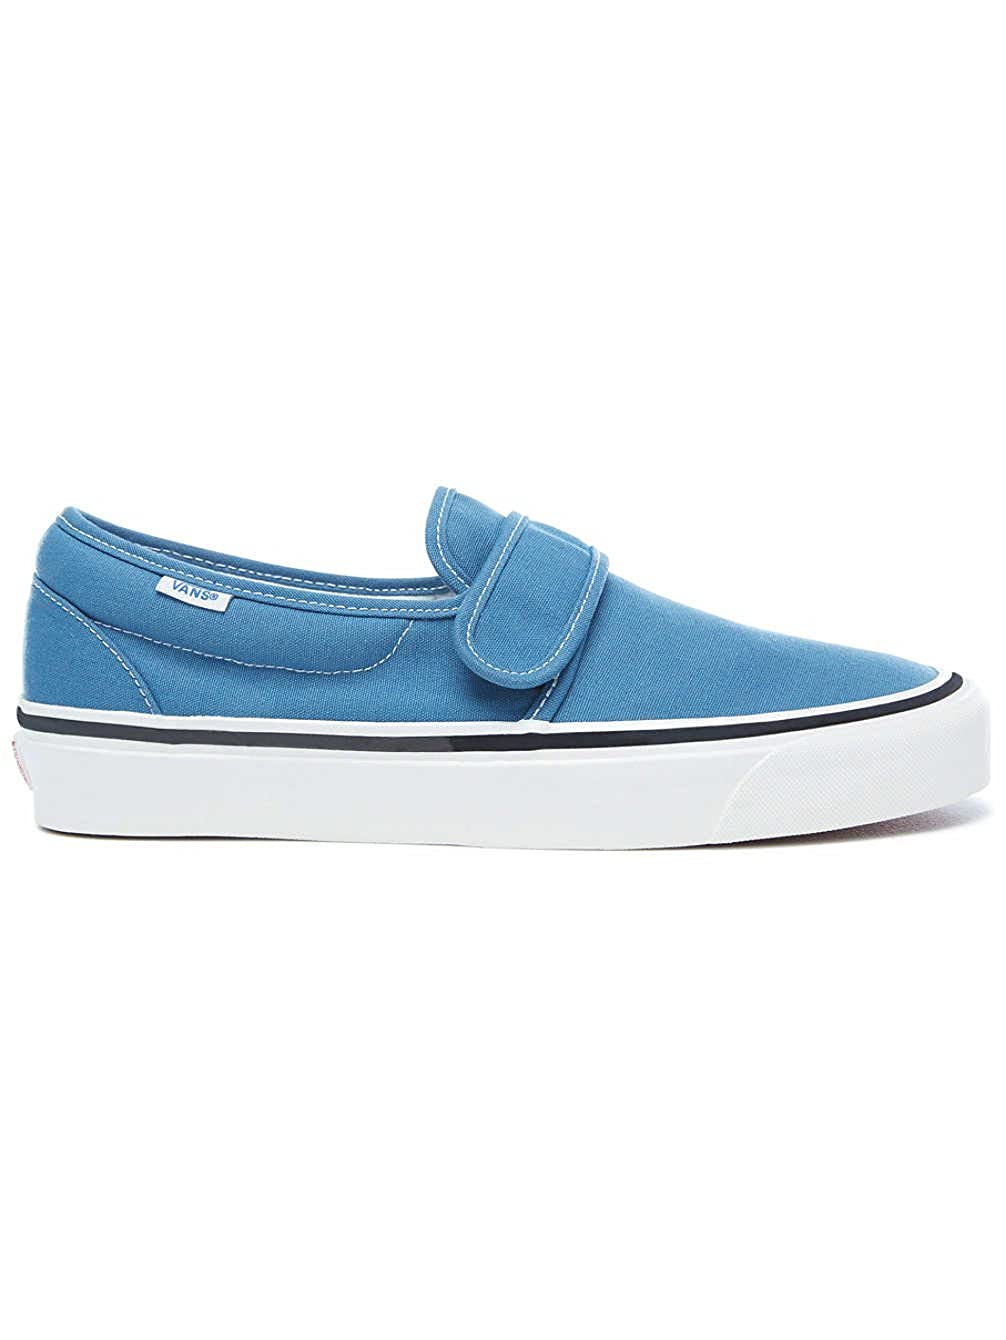 Vans Slip Ons Men Anaheim Factory 47 V DX Slip-Ons  Amazon.co.uk  Shoes    Bags 23aa4f8db